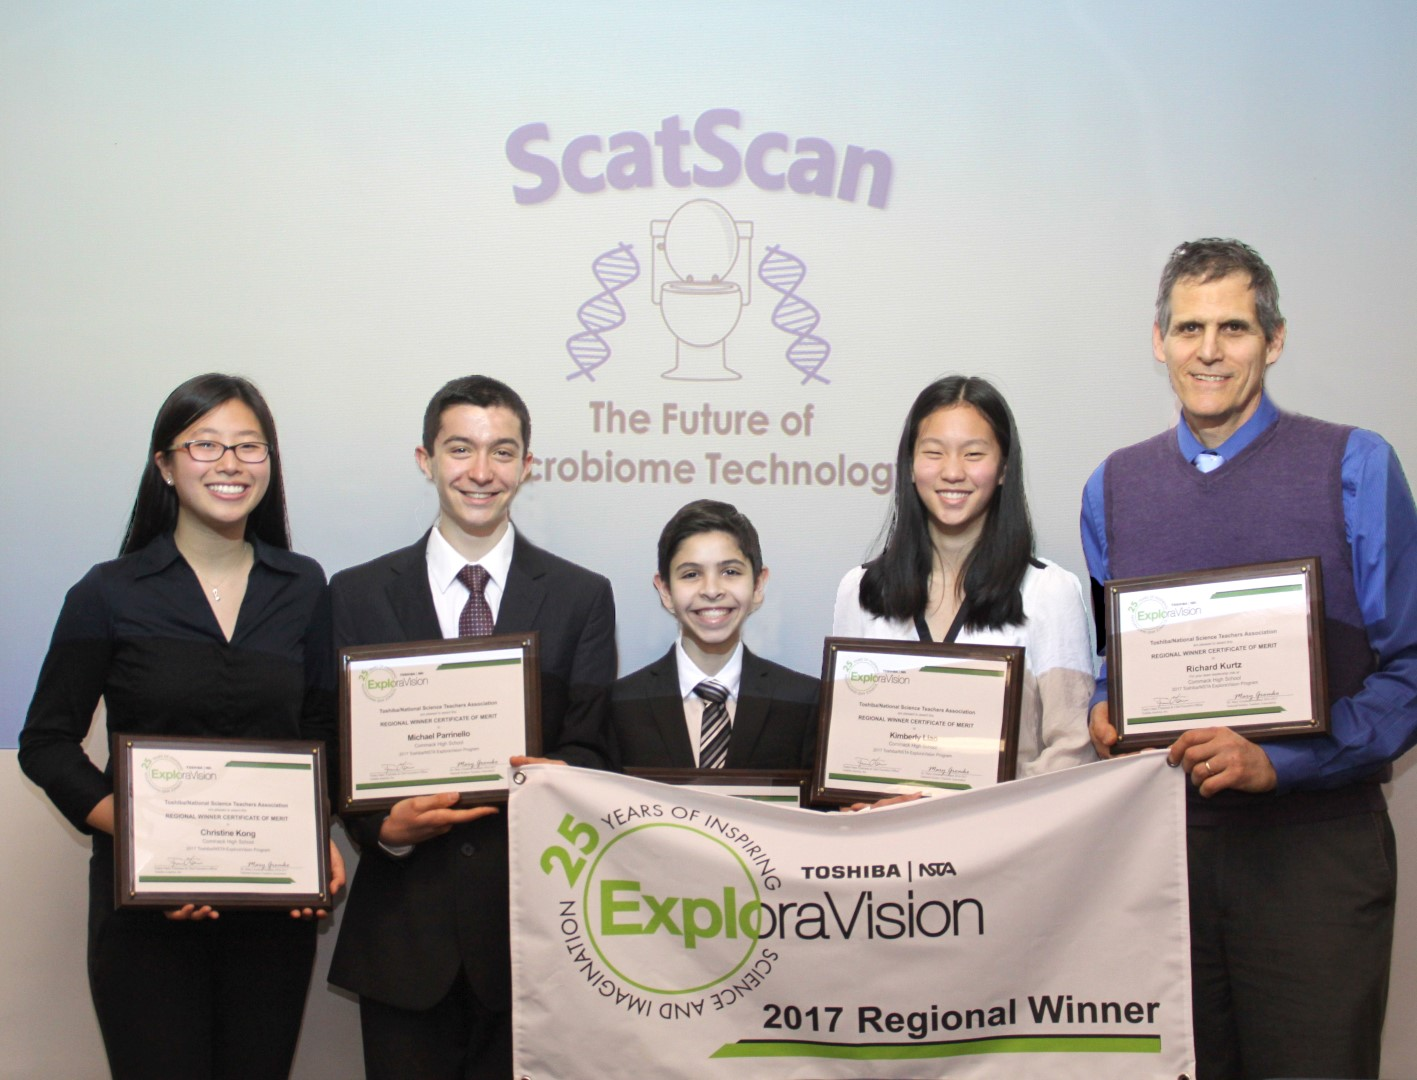 National Exploravision Winners